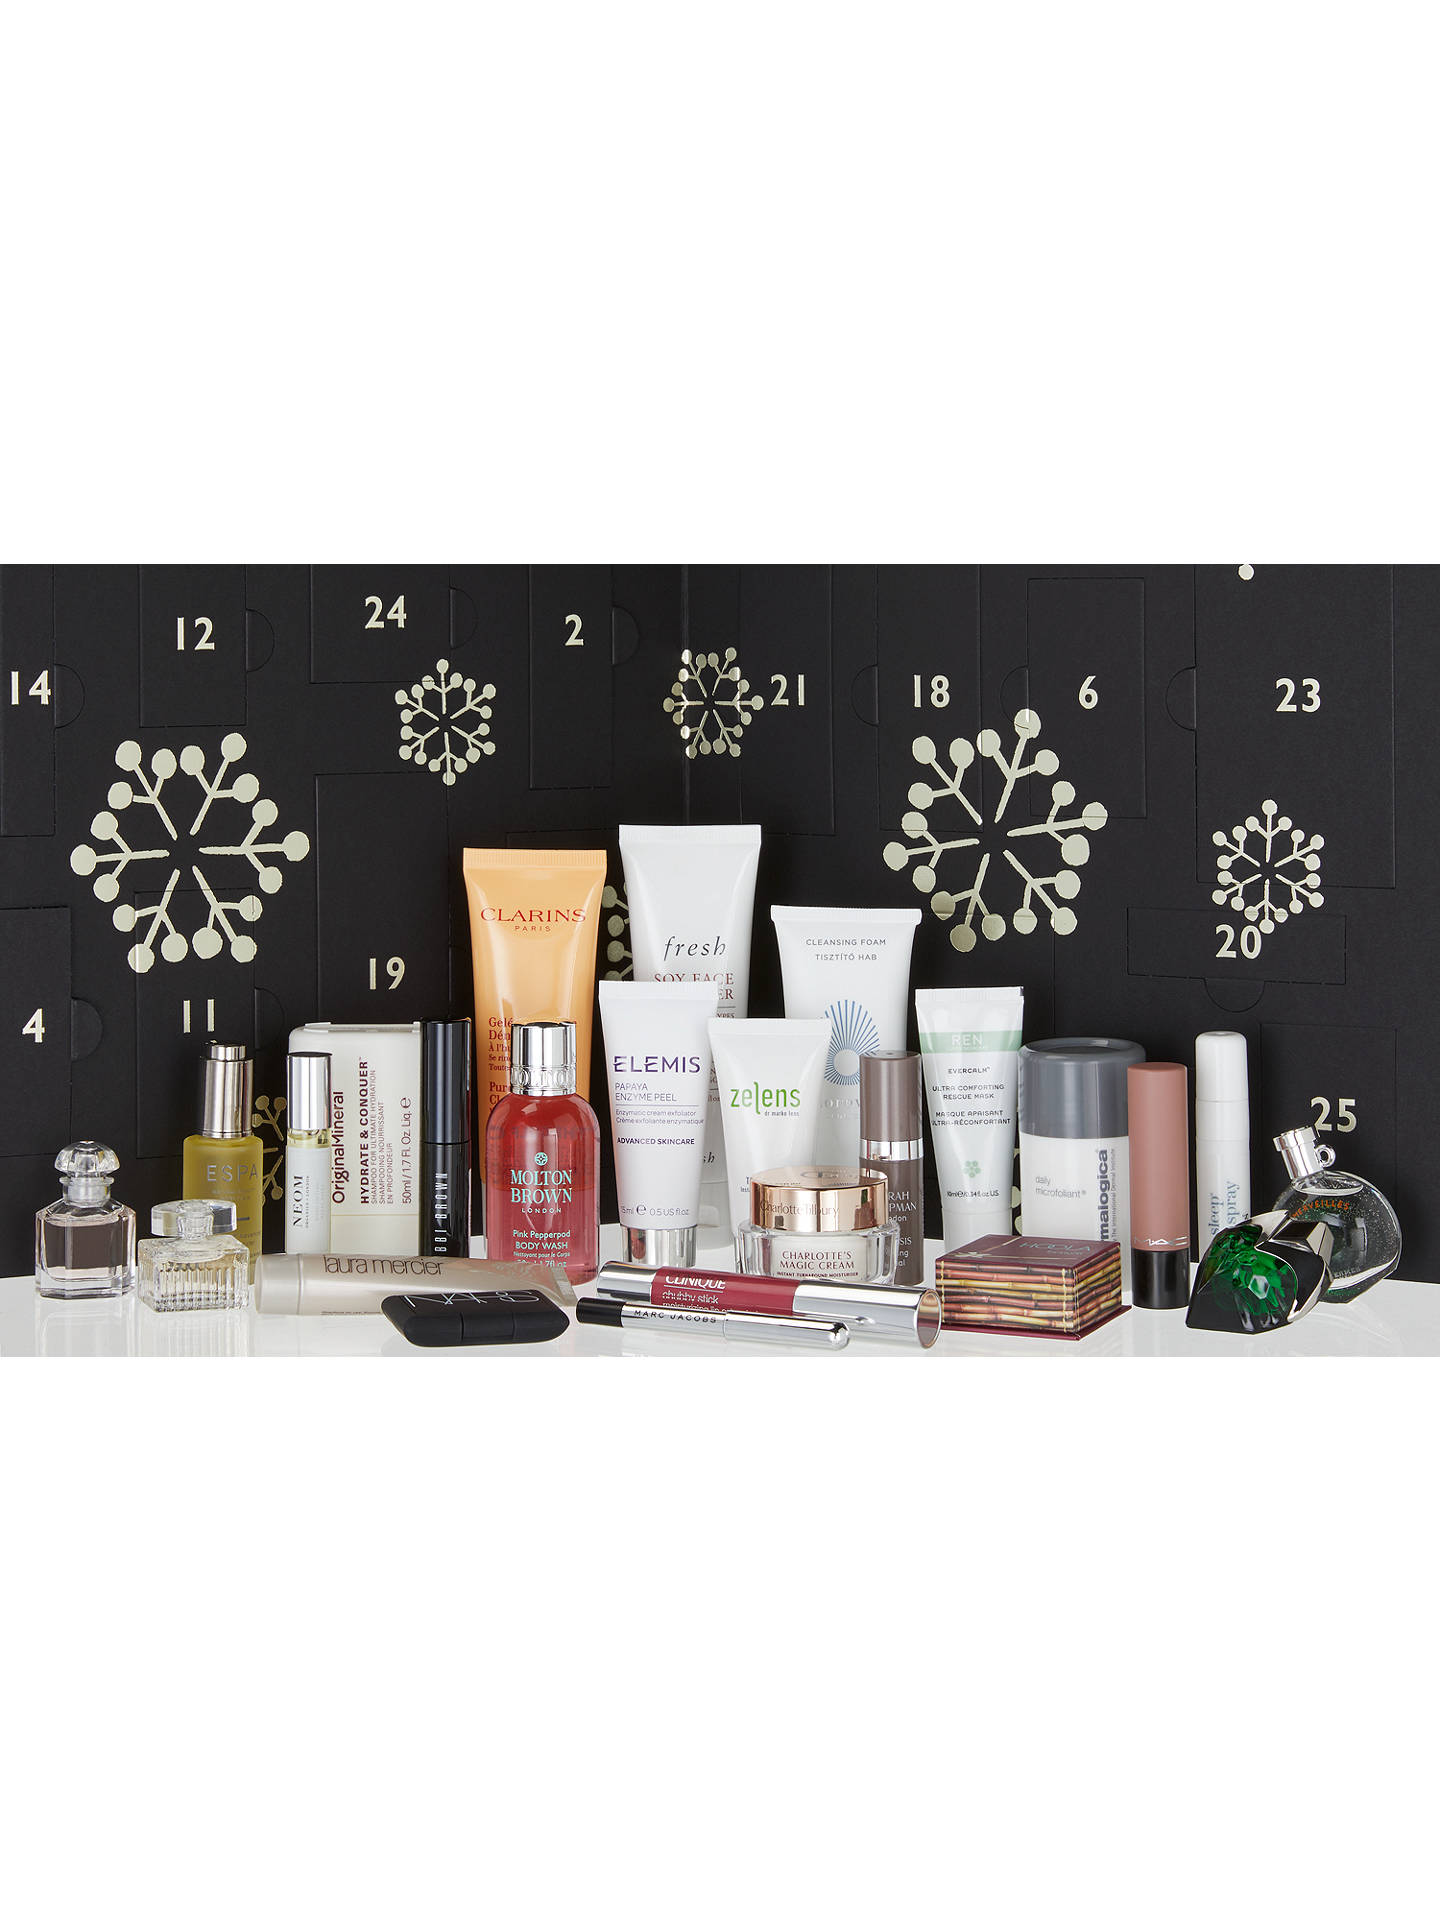 BuyJohn Lewis Beauty Advent Calendar Online at johnlewis.com